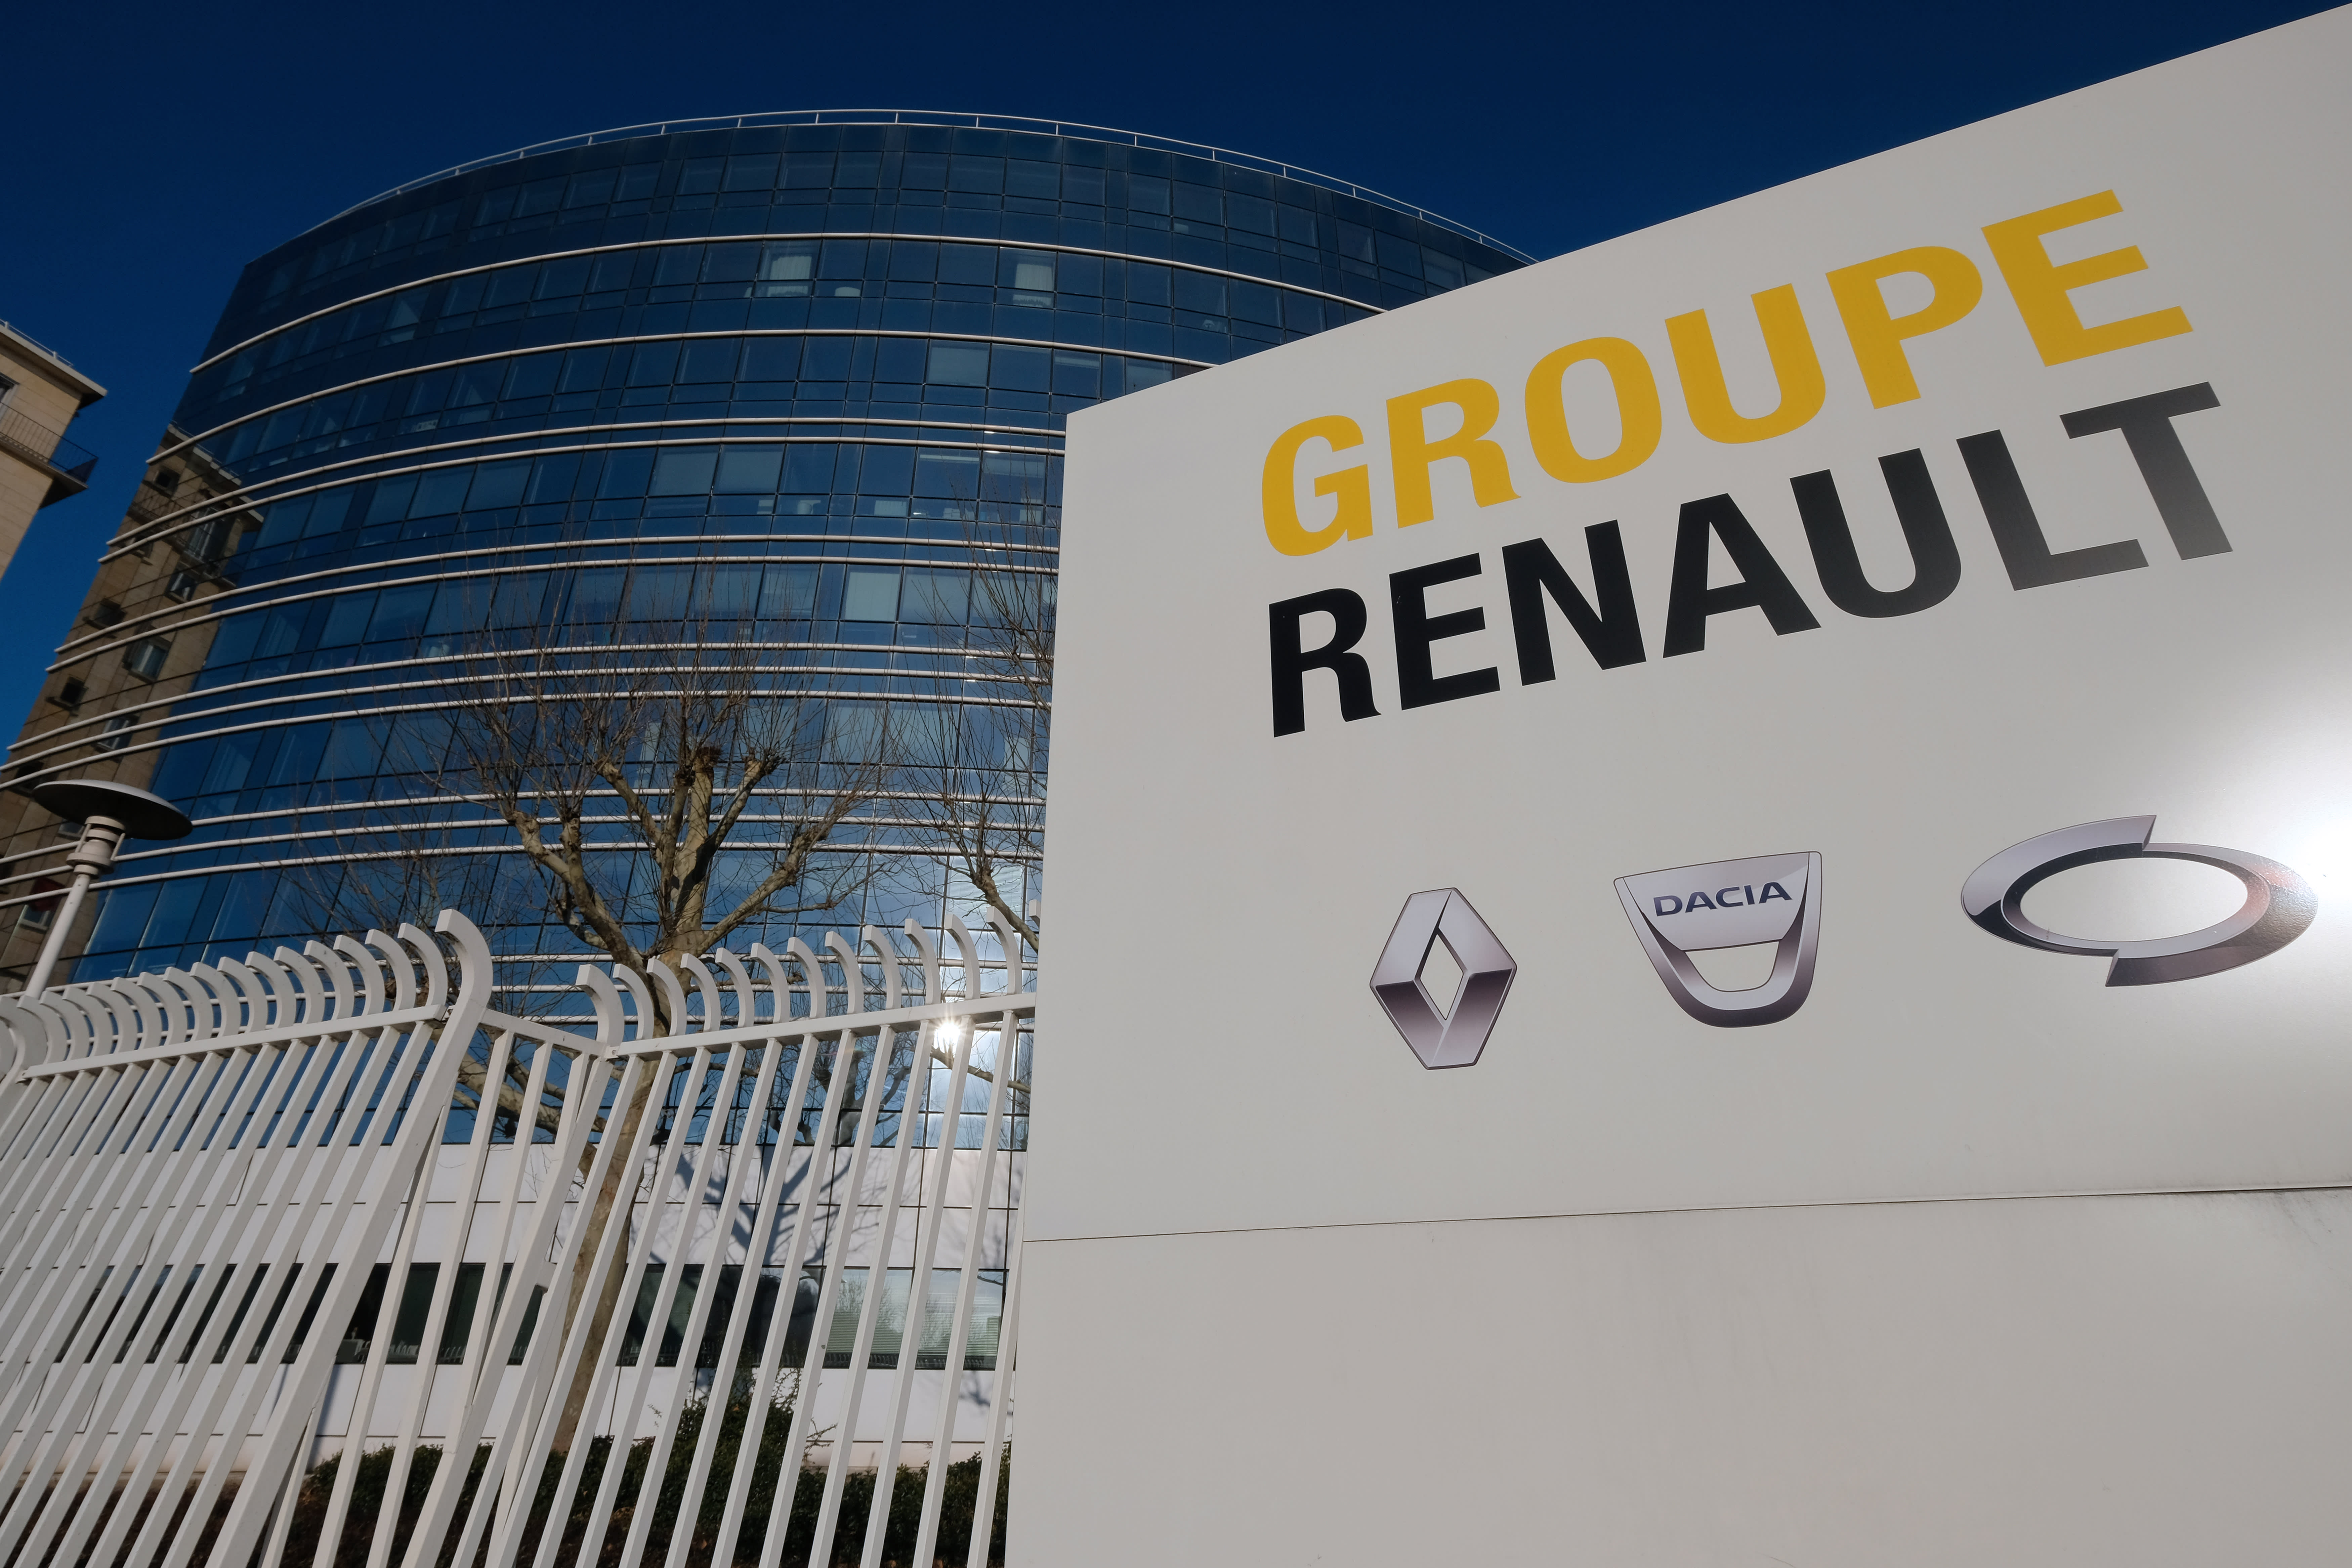 'Extraordinarily positive': Renault chair claims Nissan relationship has bounced back after Ghosn